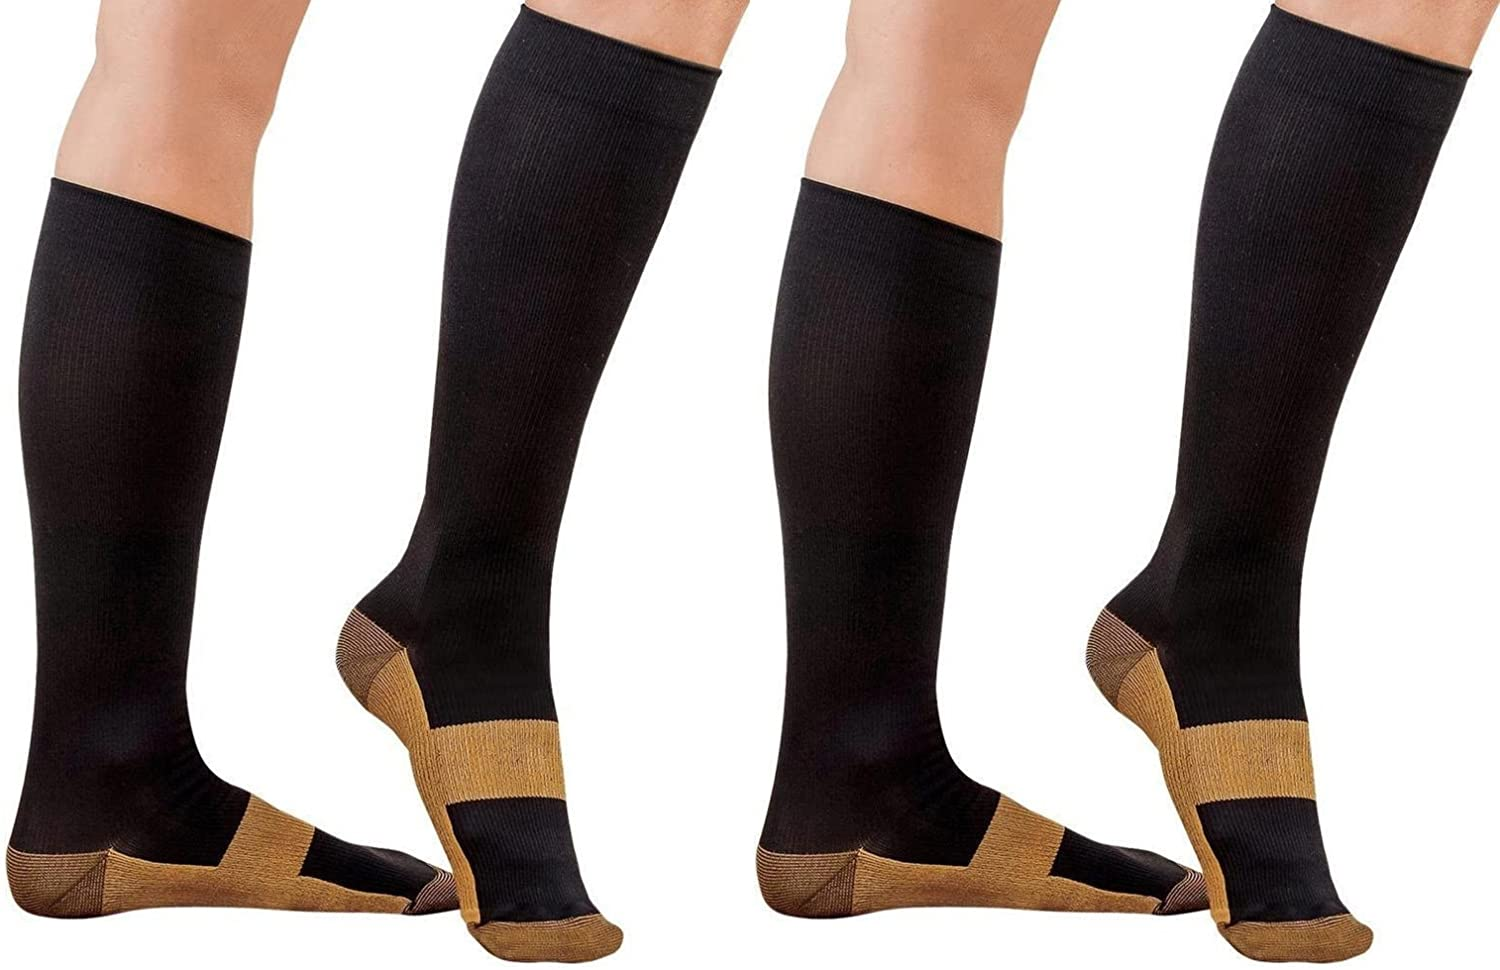 2 Pair Sirosky Compression Copper Socks Graduated 20-30 mmHg Anti Fatigue Support Sock Feet Foot Ankle Pain Relieving Ache Relief for Men Woman Over the Calf Below Knee High (Black/Gold-2PR, Sm/Med)